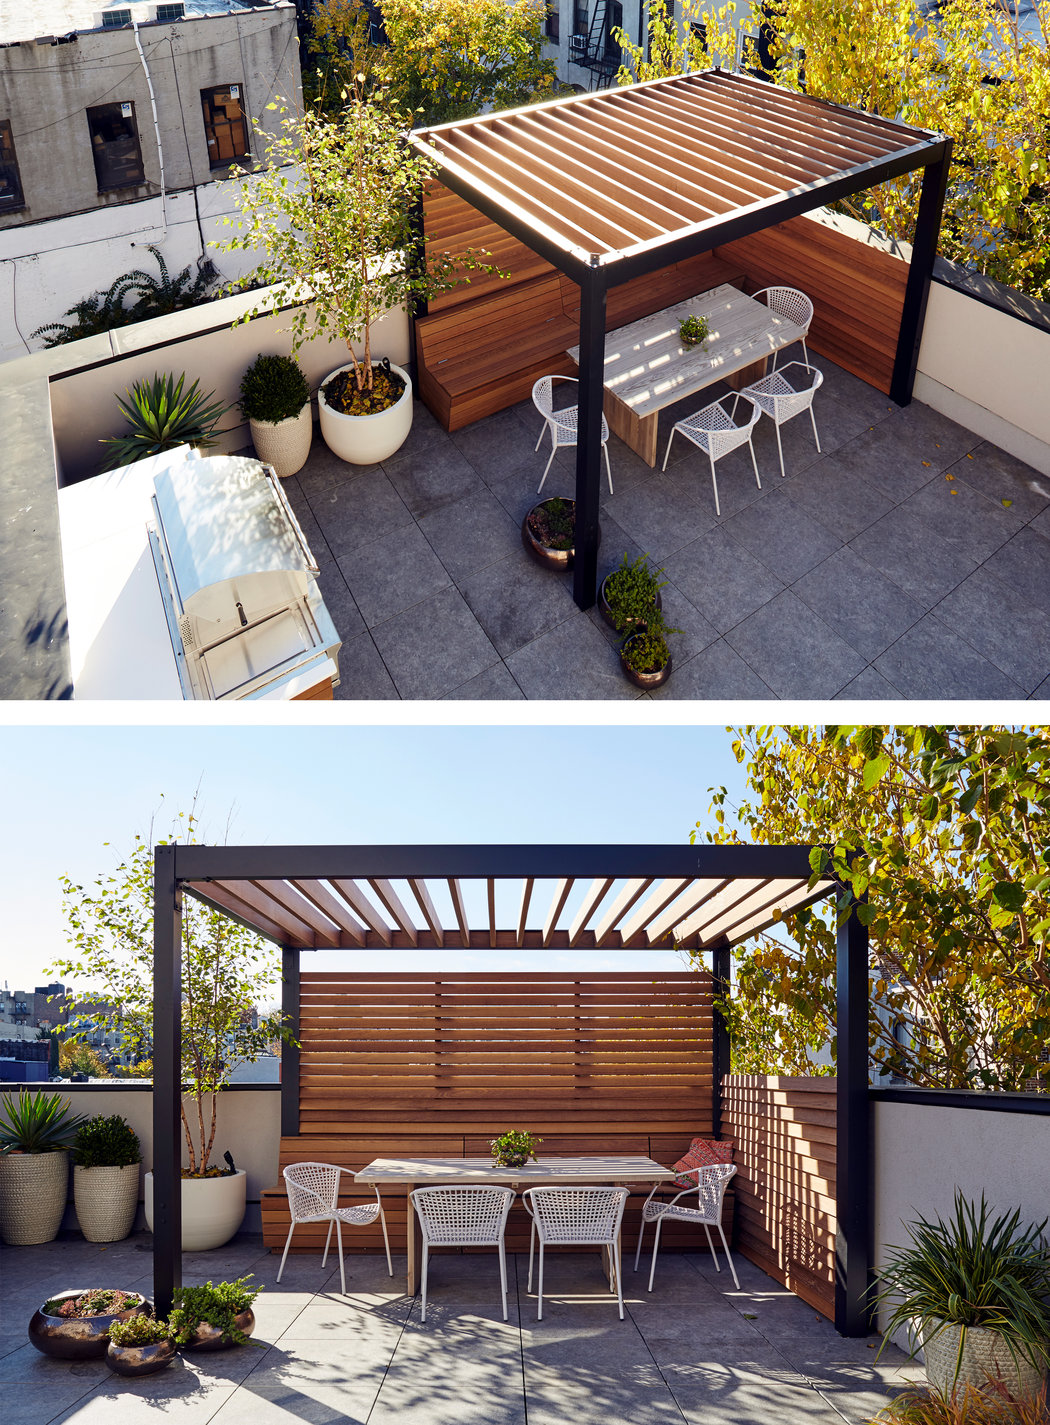 Outdoor Patio Design Pictures Creating A Garden Oasis In The City The New York Times